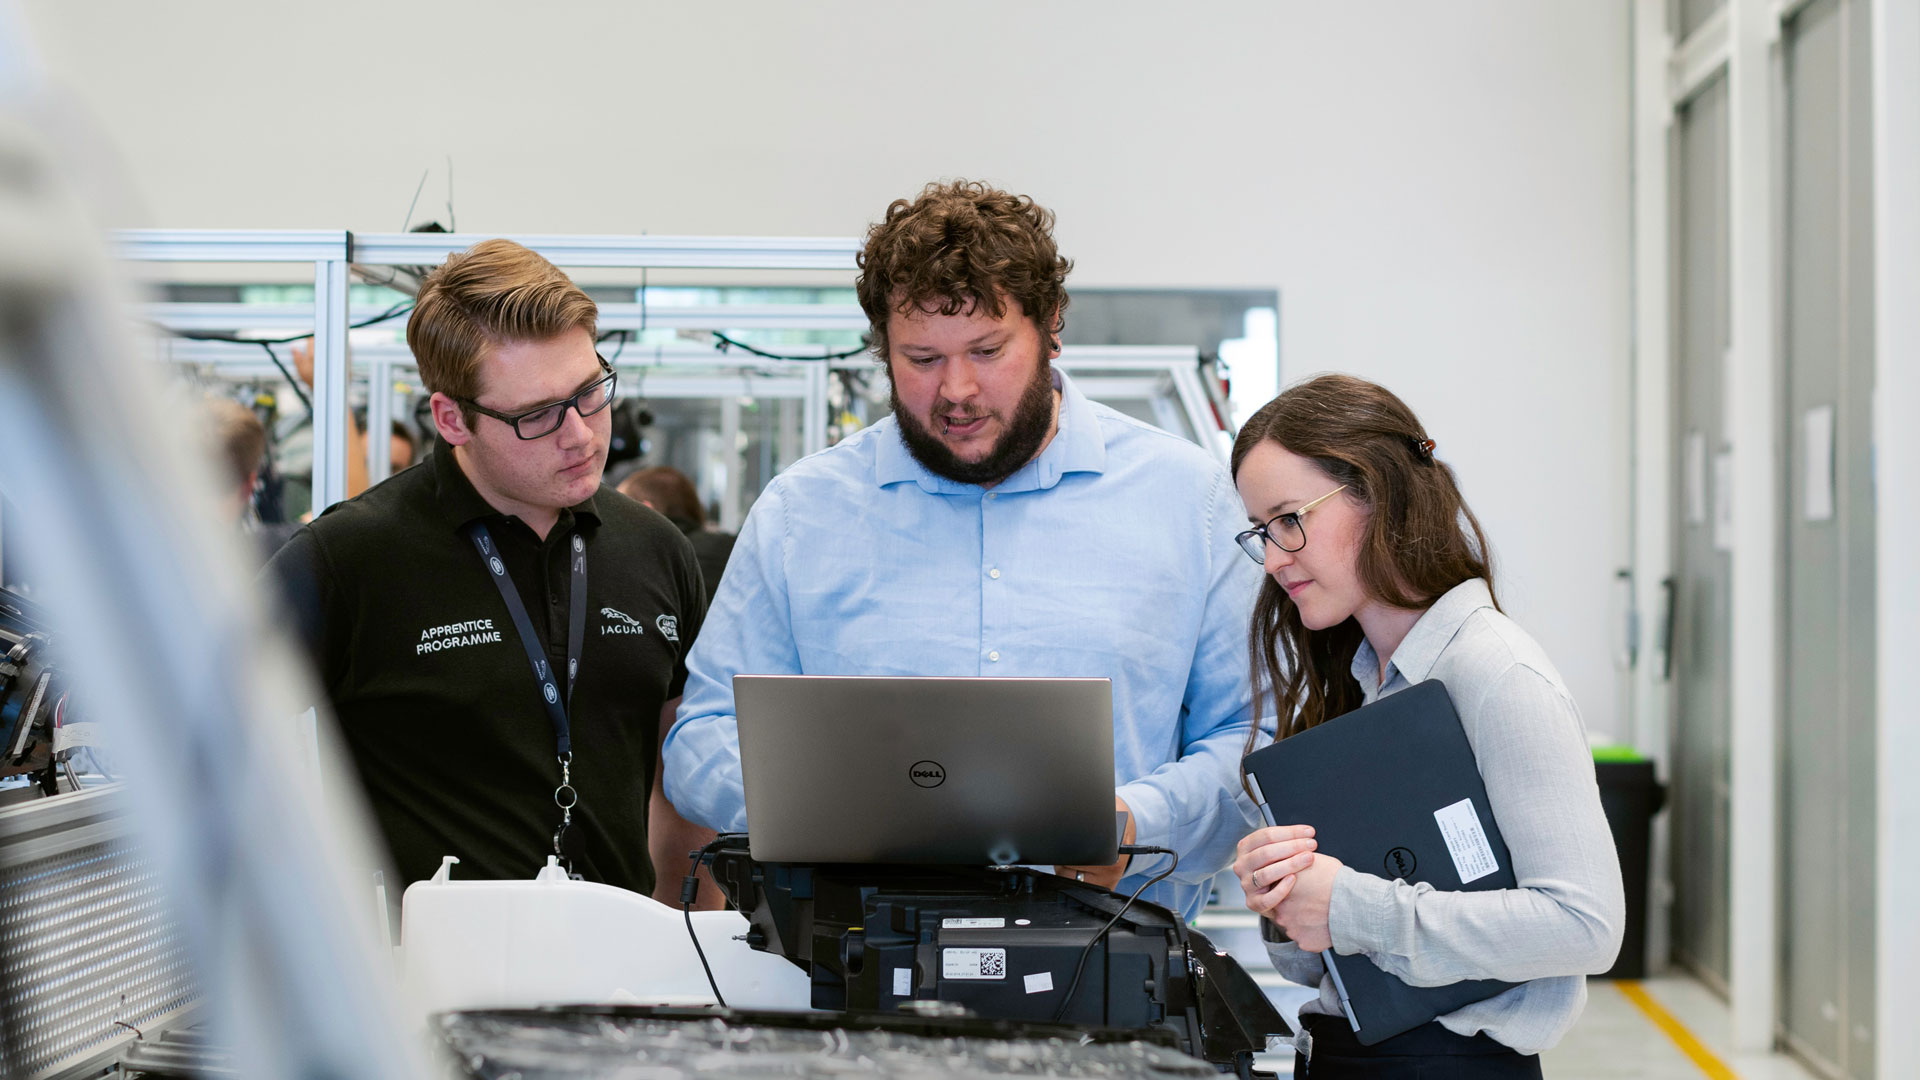 Three people in factory environment, looking at a laptop screen